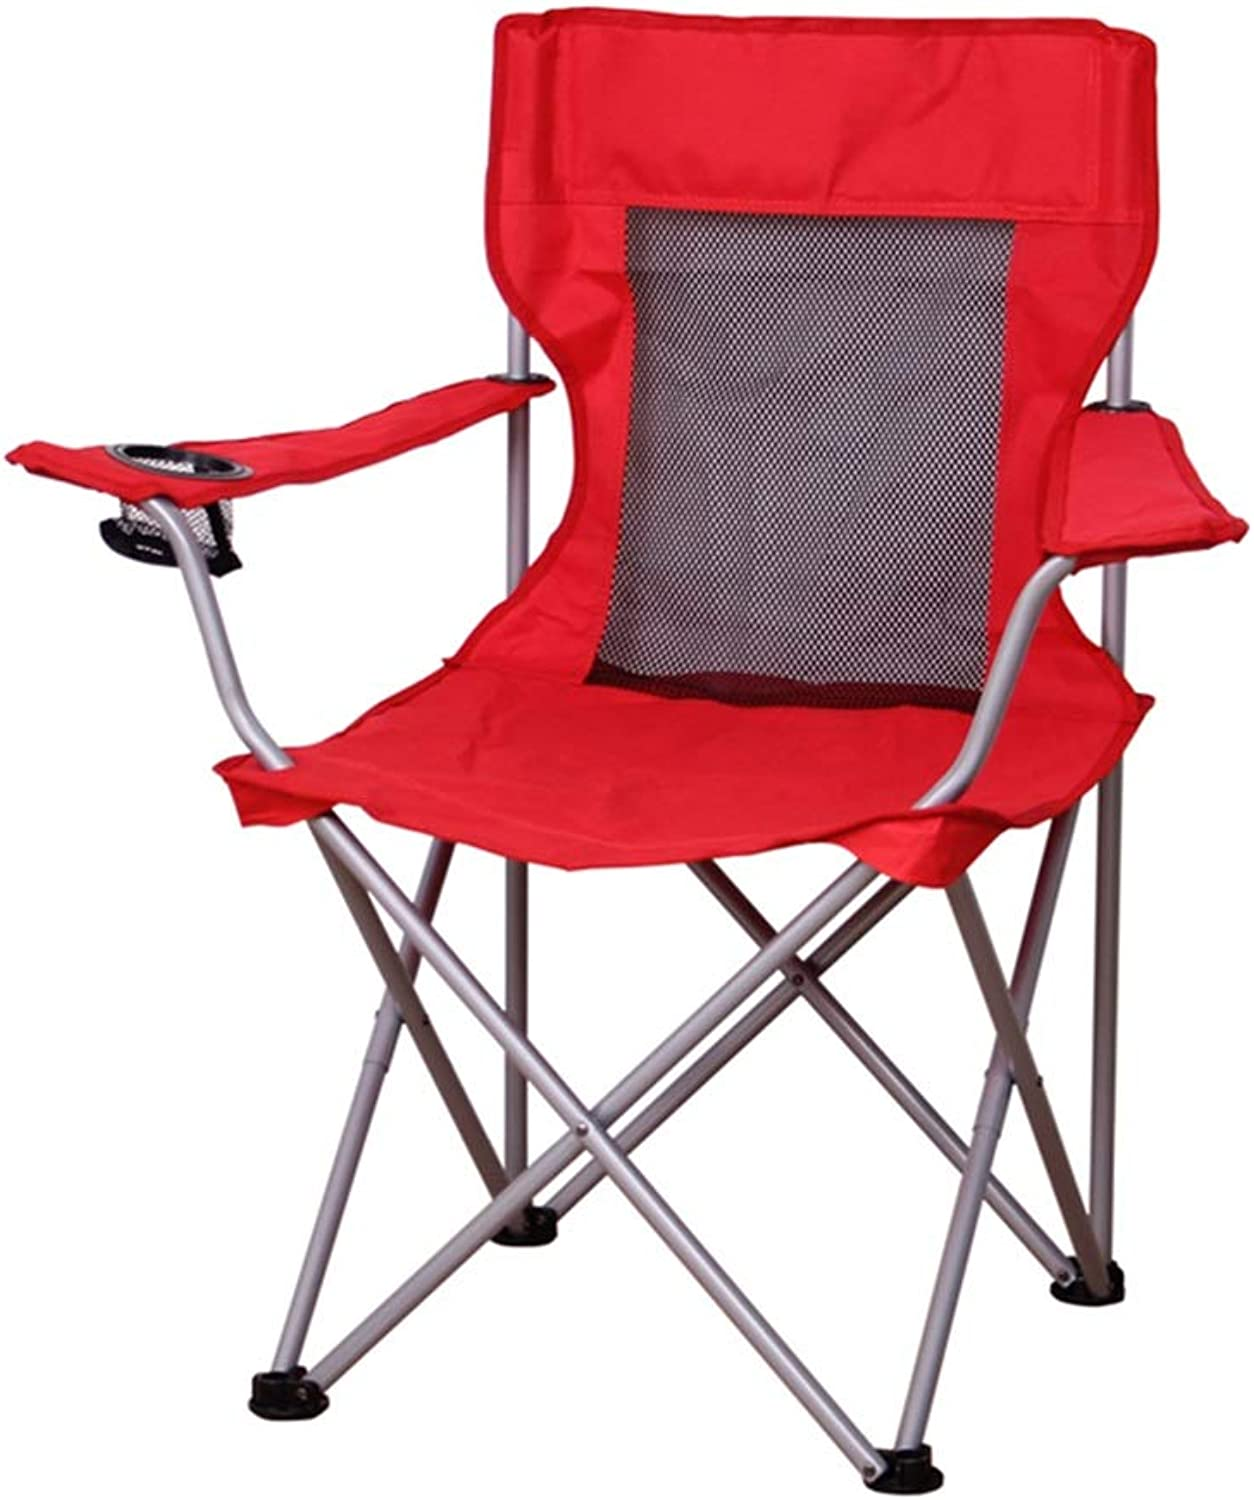 Lounge Chairs Folding Chair Sports Chair Recliner Zero Gravity Portable Camping Beach Fishing Garden Picnic Cup Holder Bearing Weight 100kg, Red + Mesh